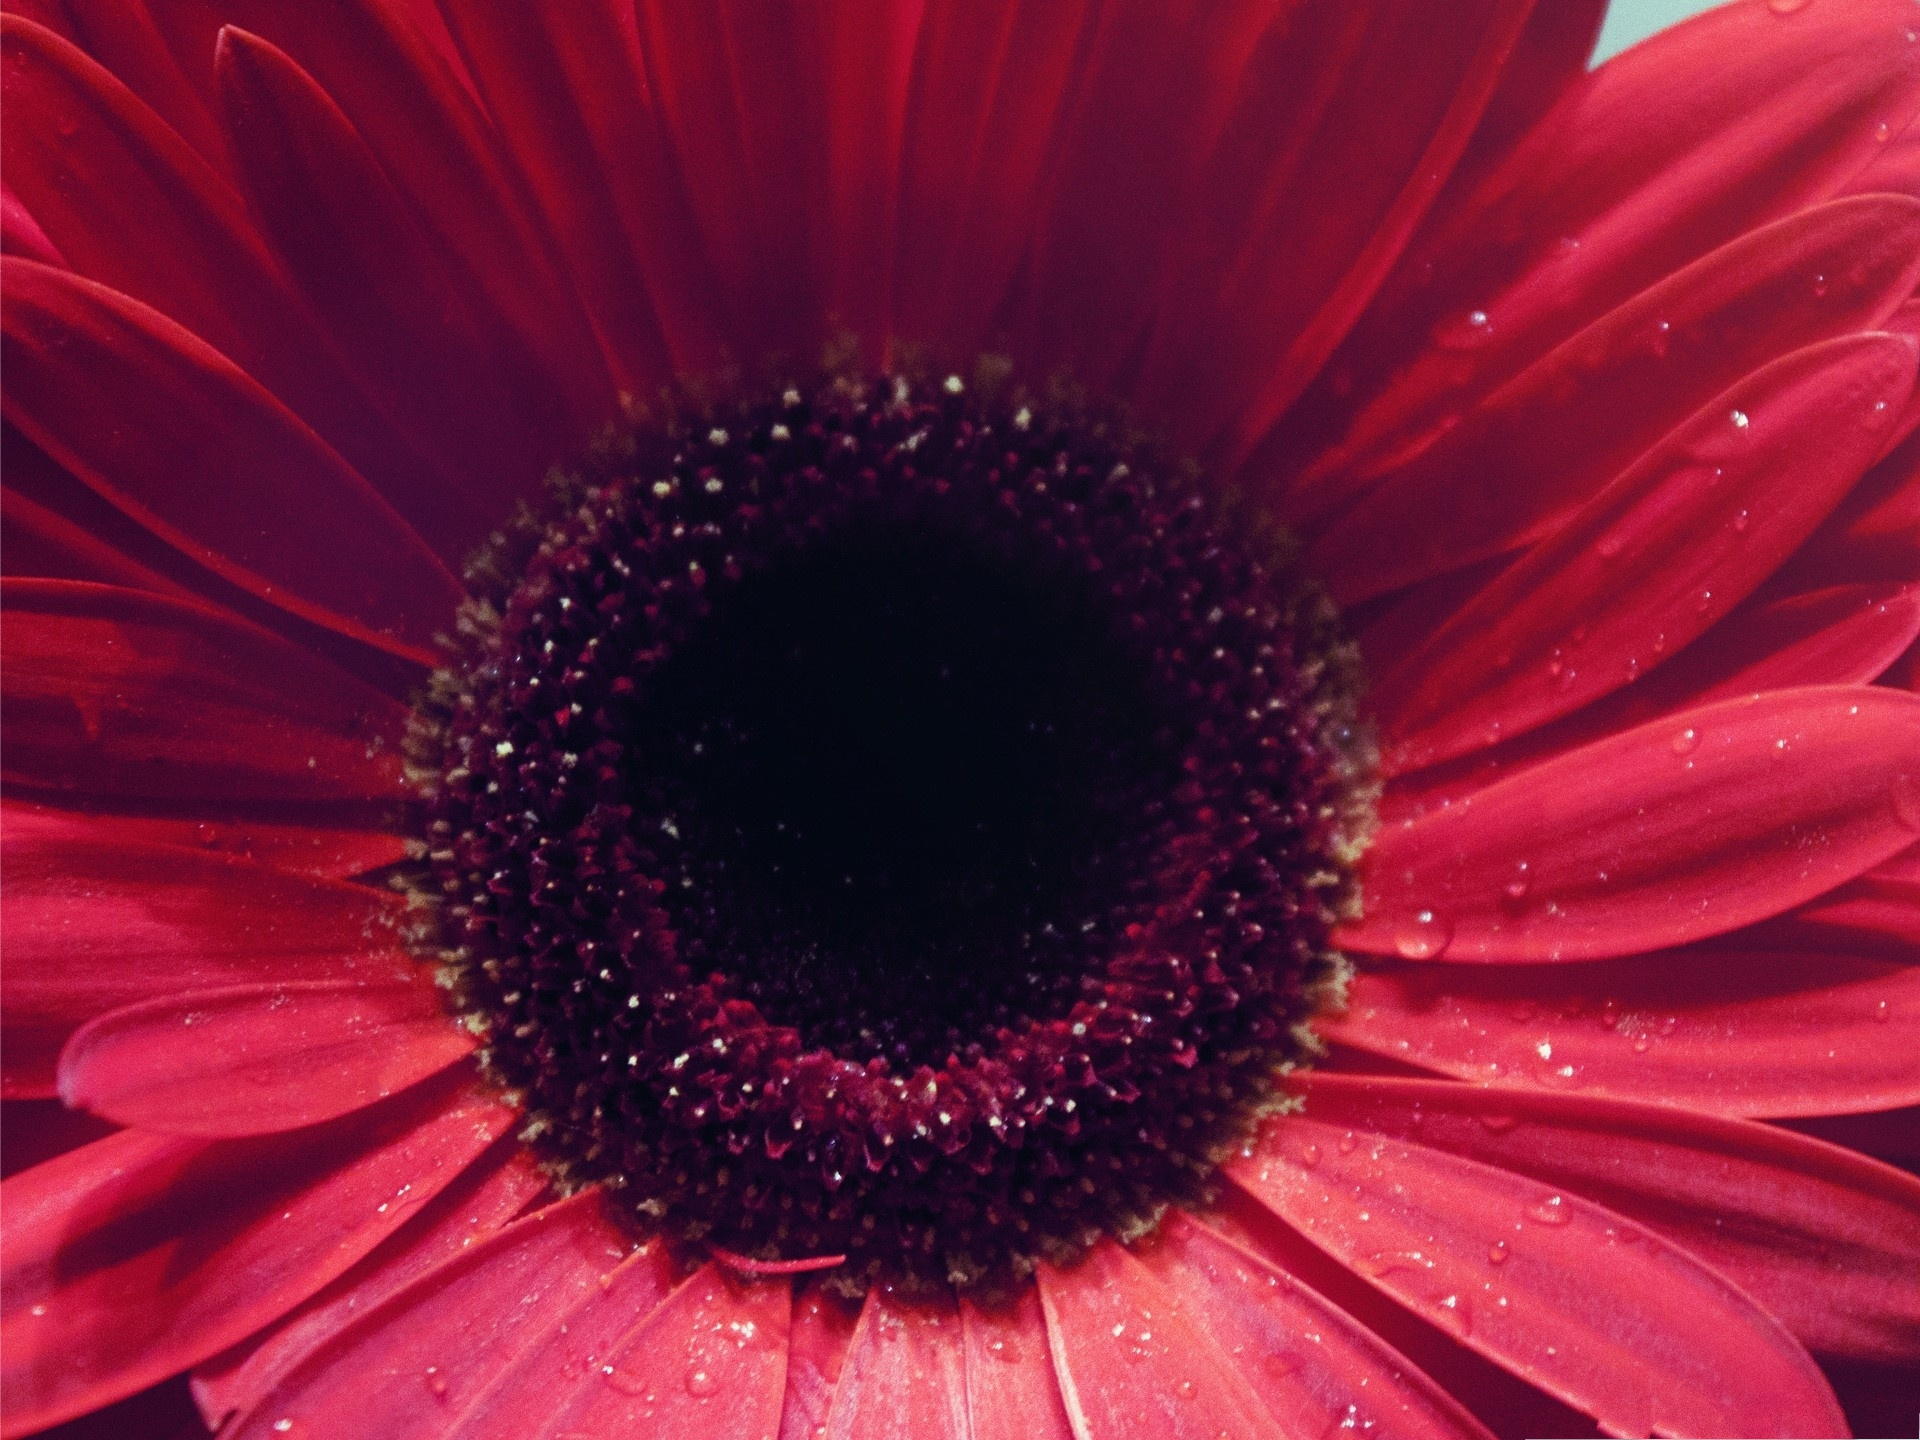 click to free download the wallpaper--Gerbera Flowers Picture, Red Flowers in Bloom, Water Drops on Petals 1920X1440 free wallpaper download